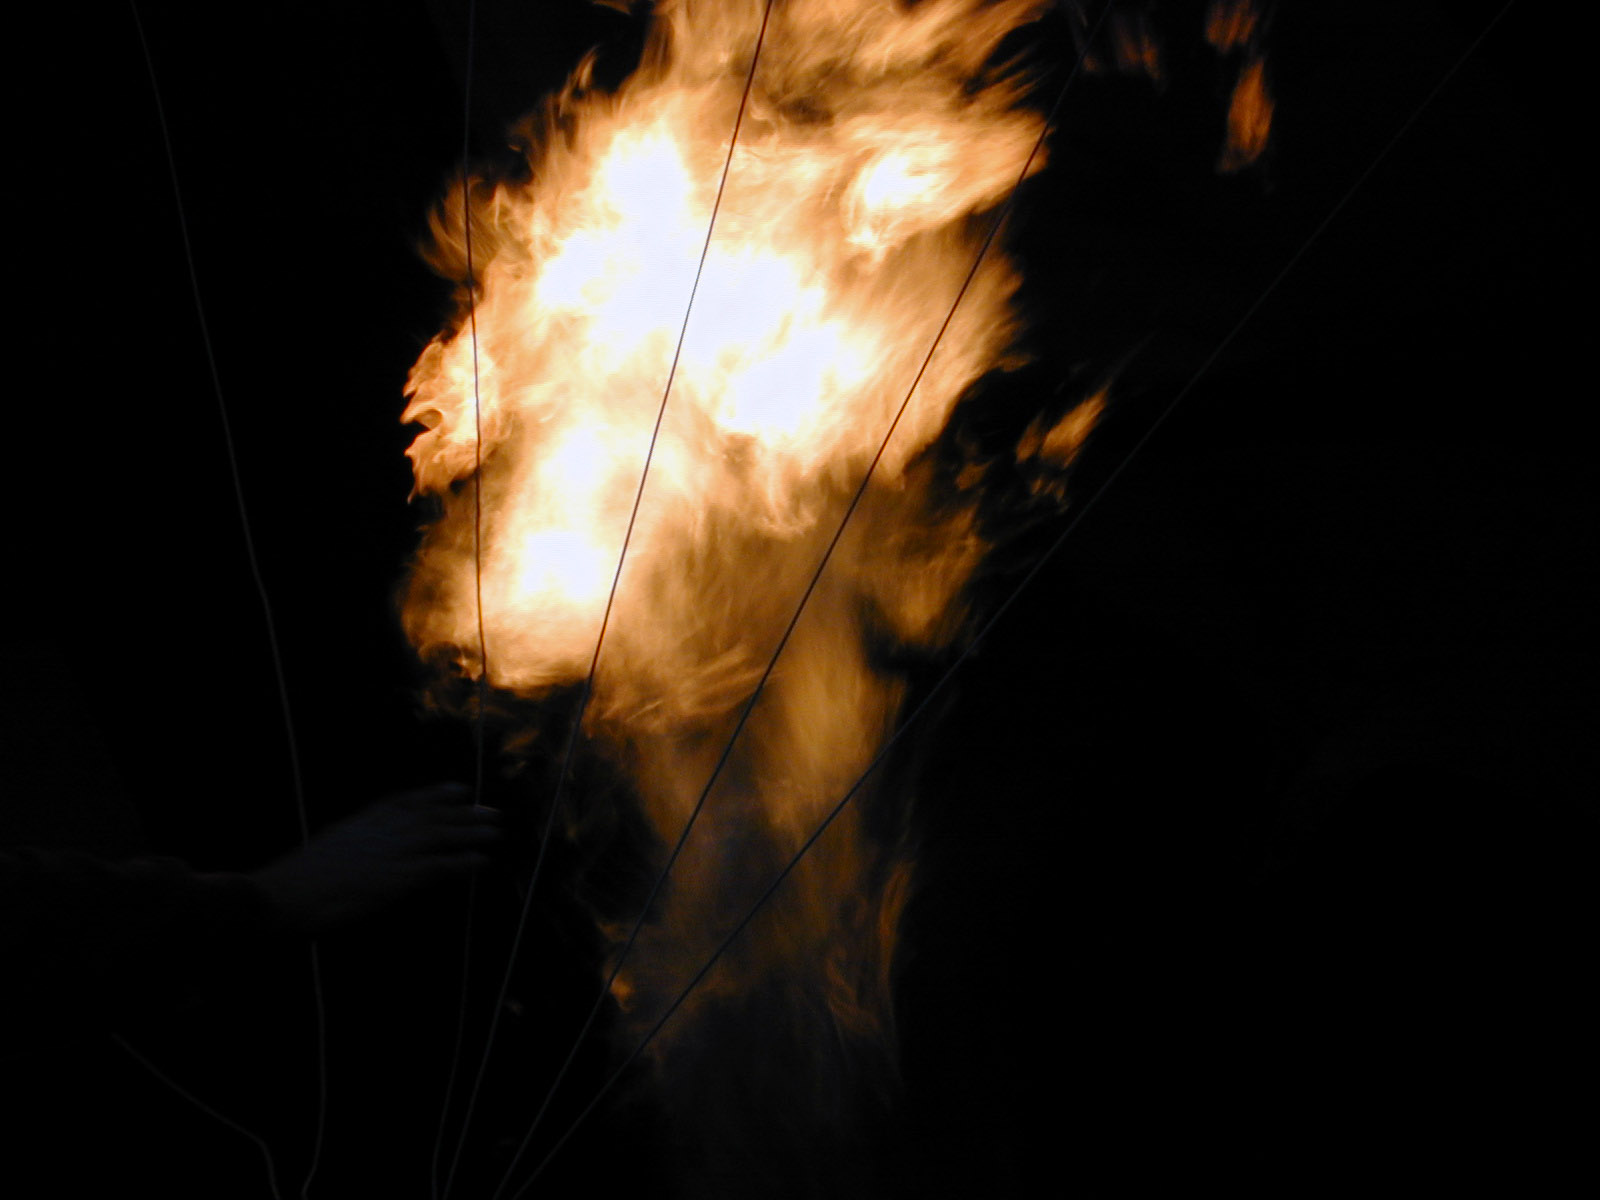 fire bright flame flames roaring darkness lighting the